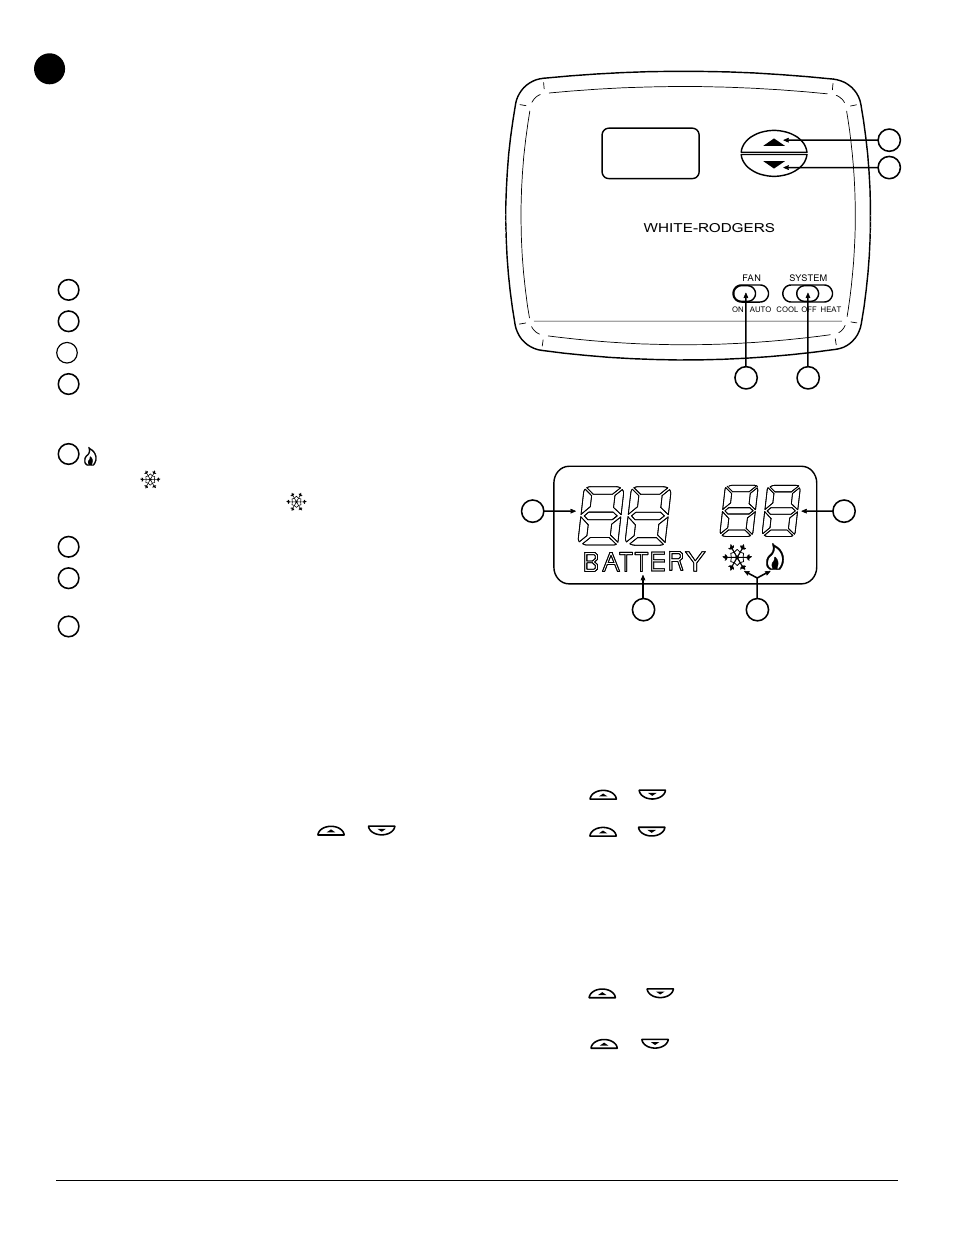 Haier Mini Fridge Thermostat Wiring Diagram